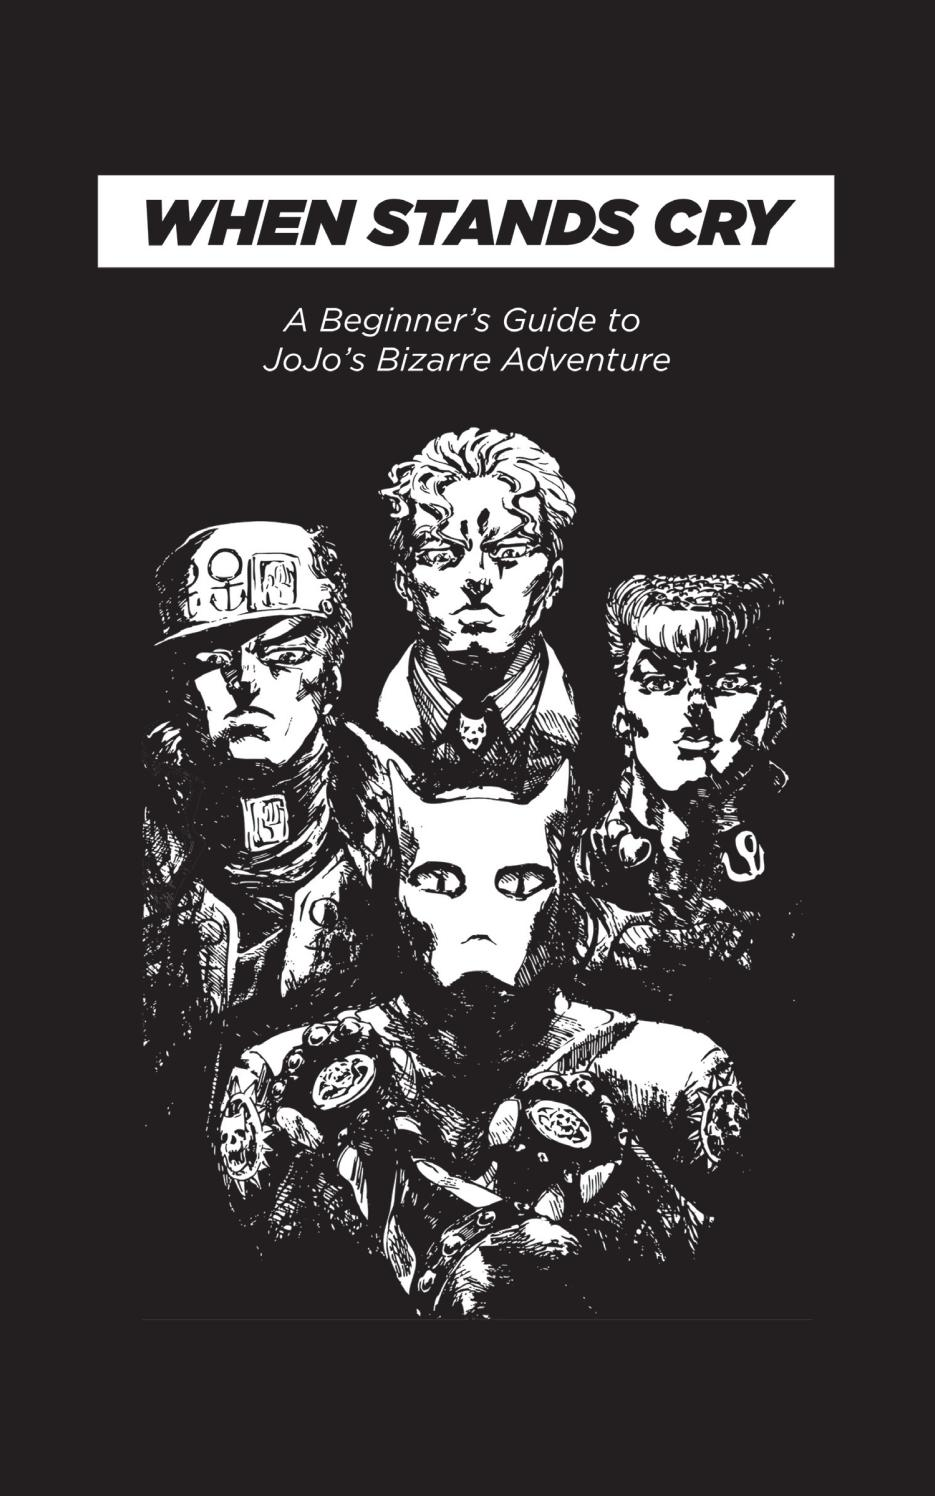 When Stands Cry A Beginner S Guide To Jojo S Bizarre Adventure By Winona Peace Issuu 6★ statue rankings for tactical battle! bizarre adventure by winona peace